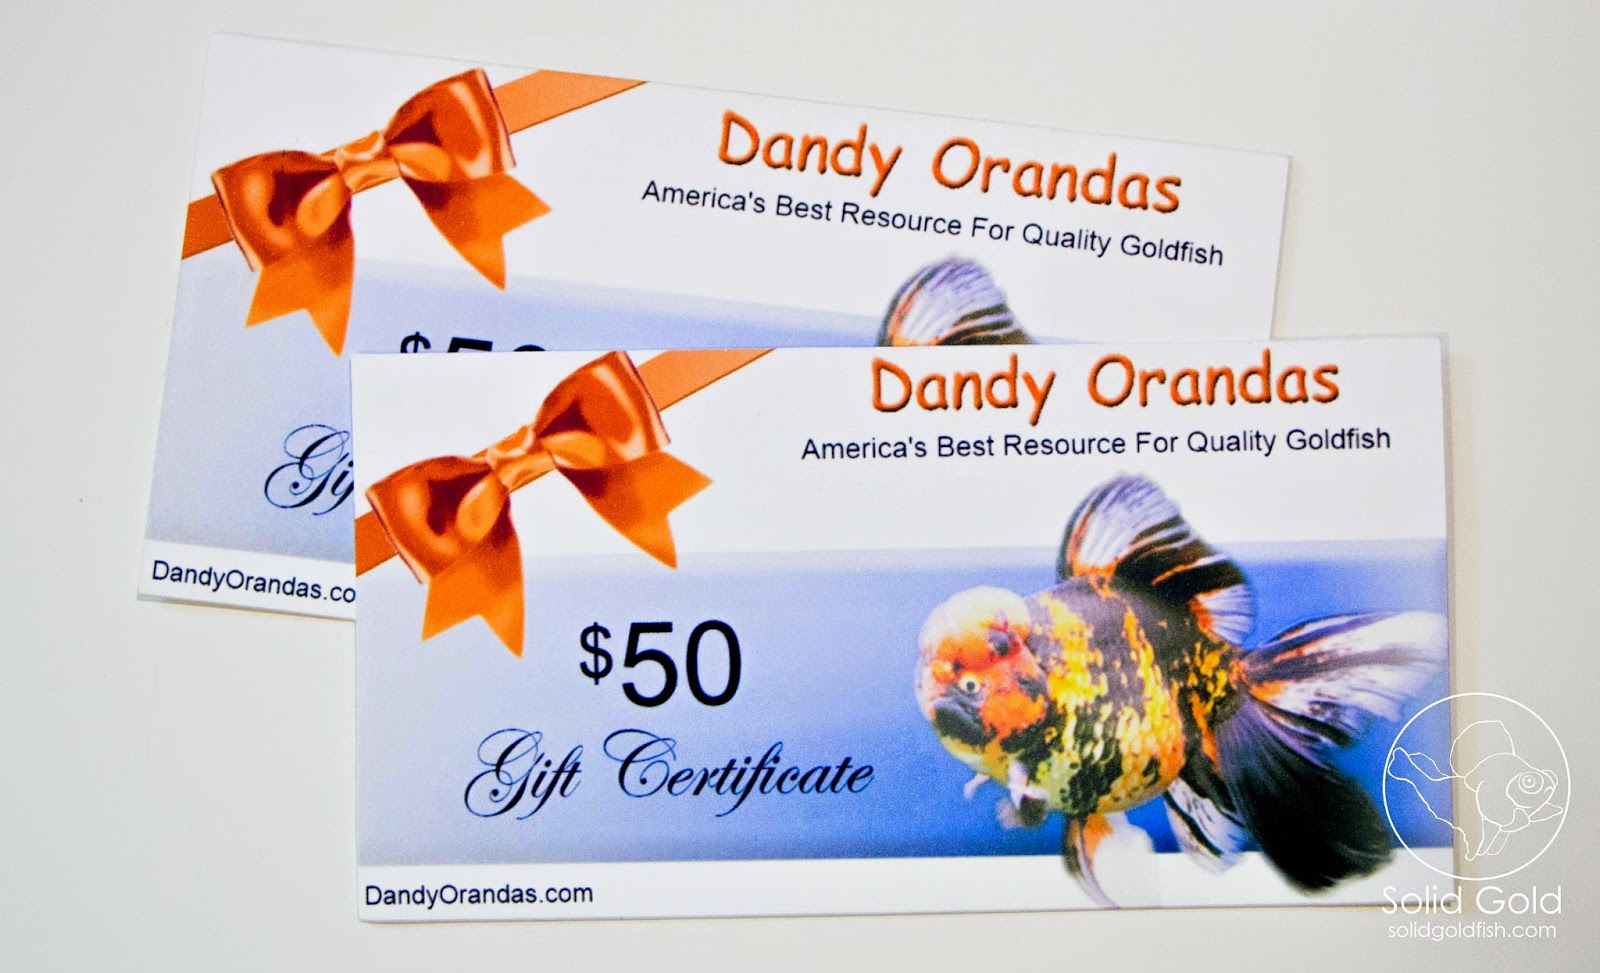 Dandy Orandas Giveaway Winners